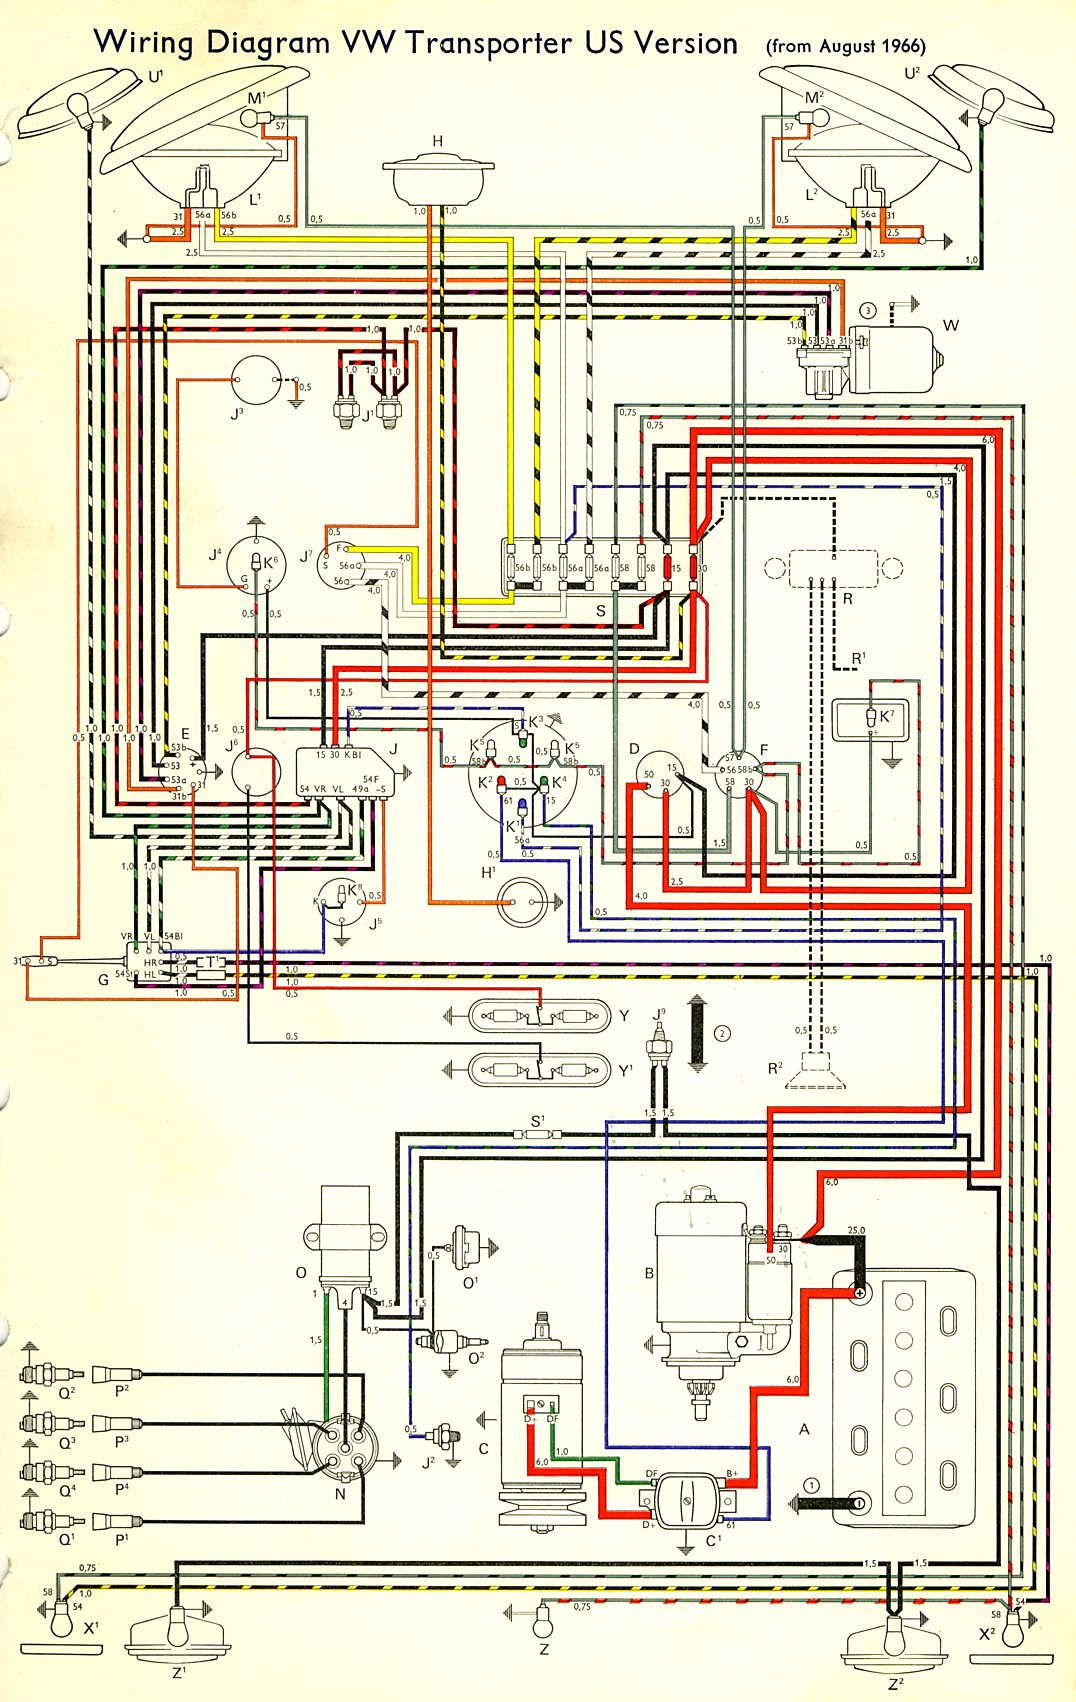 bus_67_USA thesamba com type 2 wiring diagrams 1966 corvette wiring diagram pdf at mifinder.co